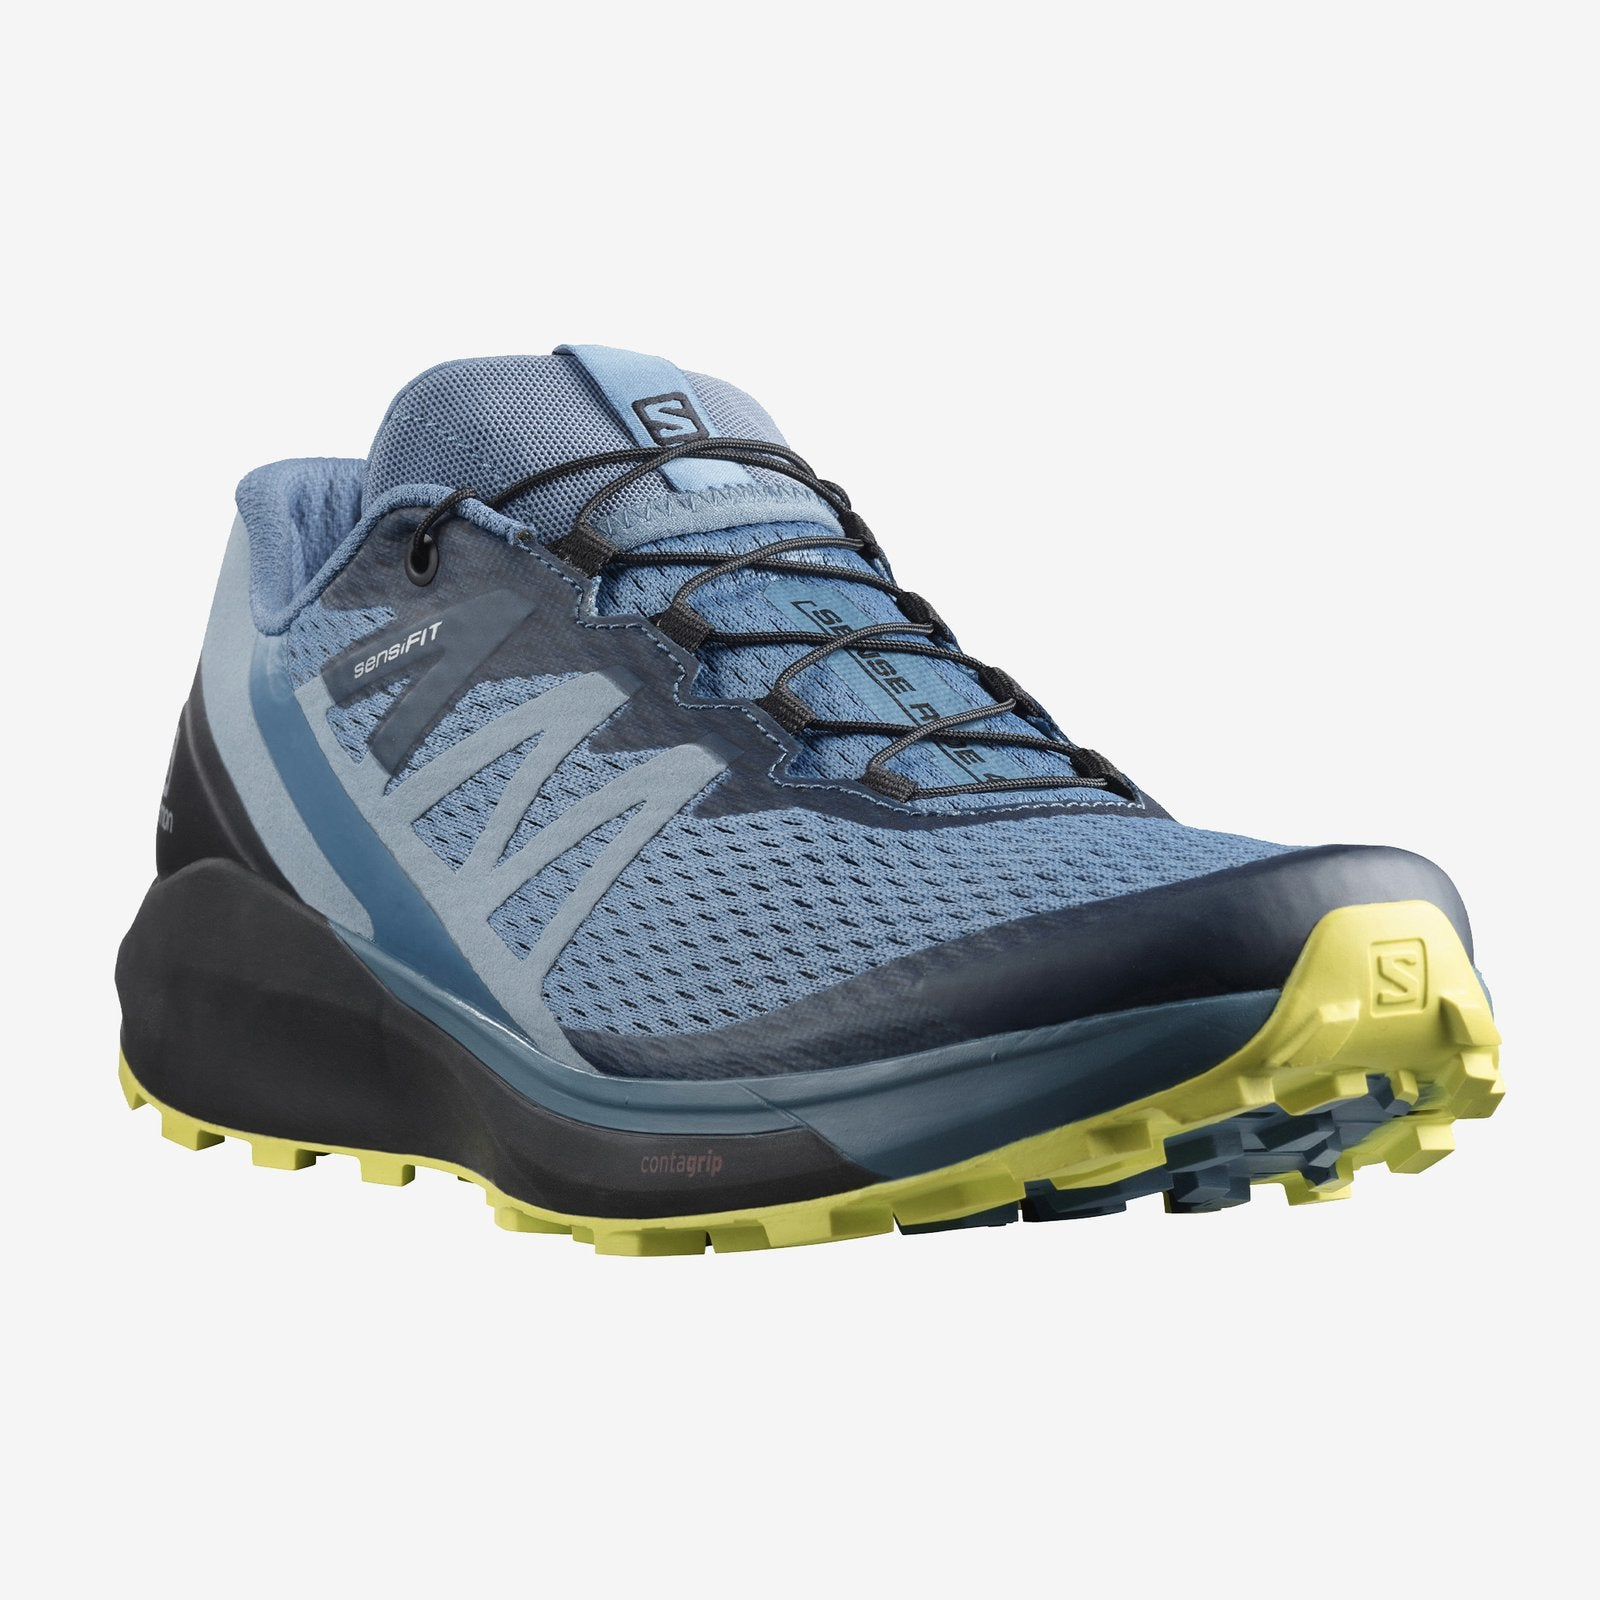 Salomon Sense Ride 4 Trail Running Shoes Copen Blue (Men's) - Find Your Feet Australia Hobart Launceston Tasmania